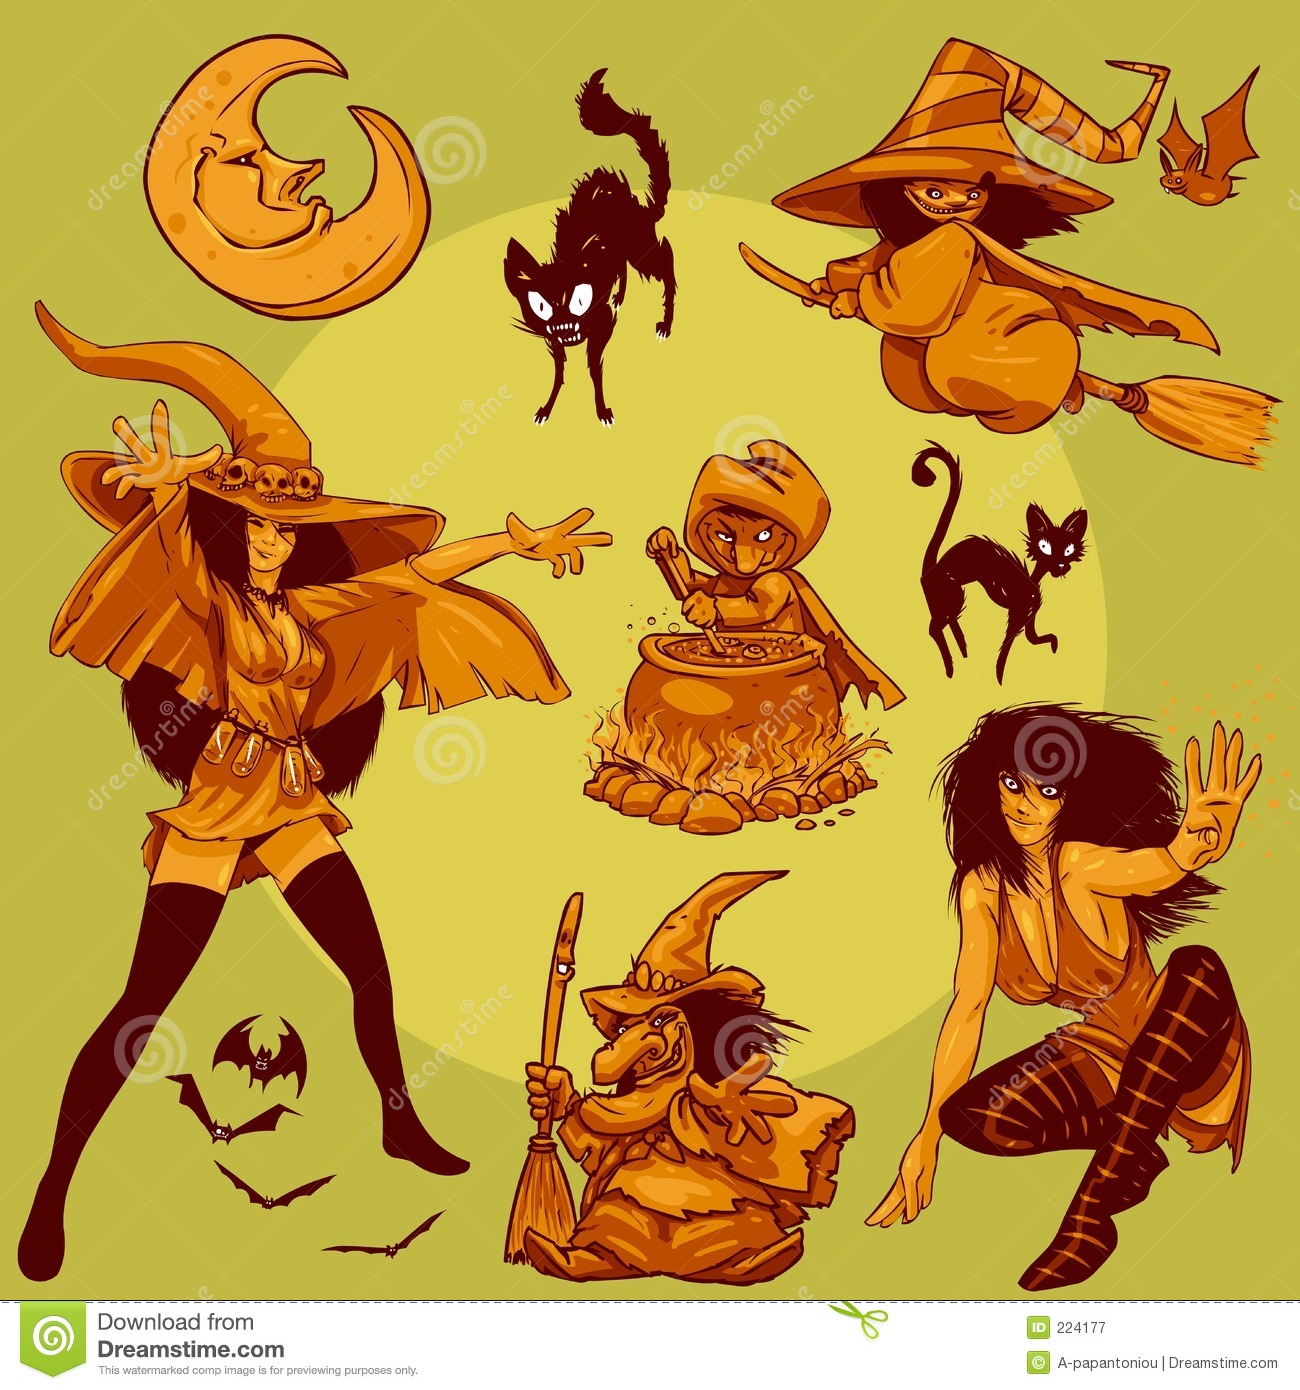 character design collection 009 halloween witches royalty free stock photography - Halloween Design